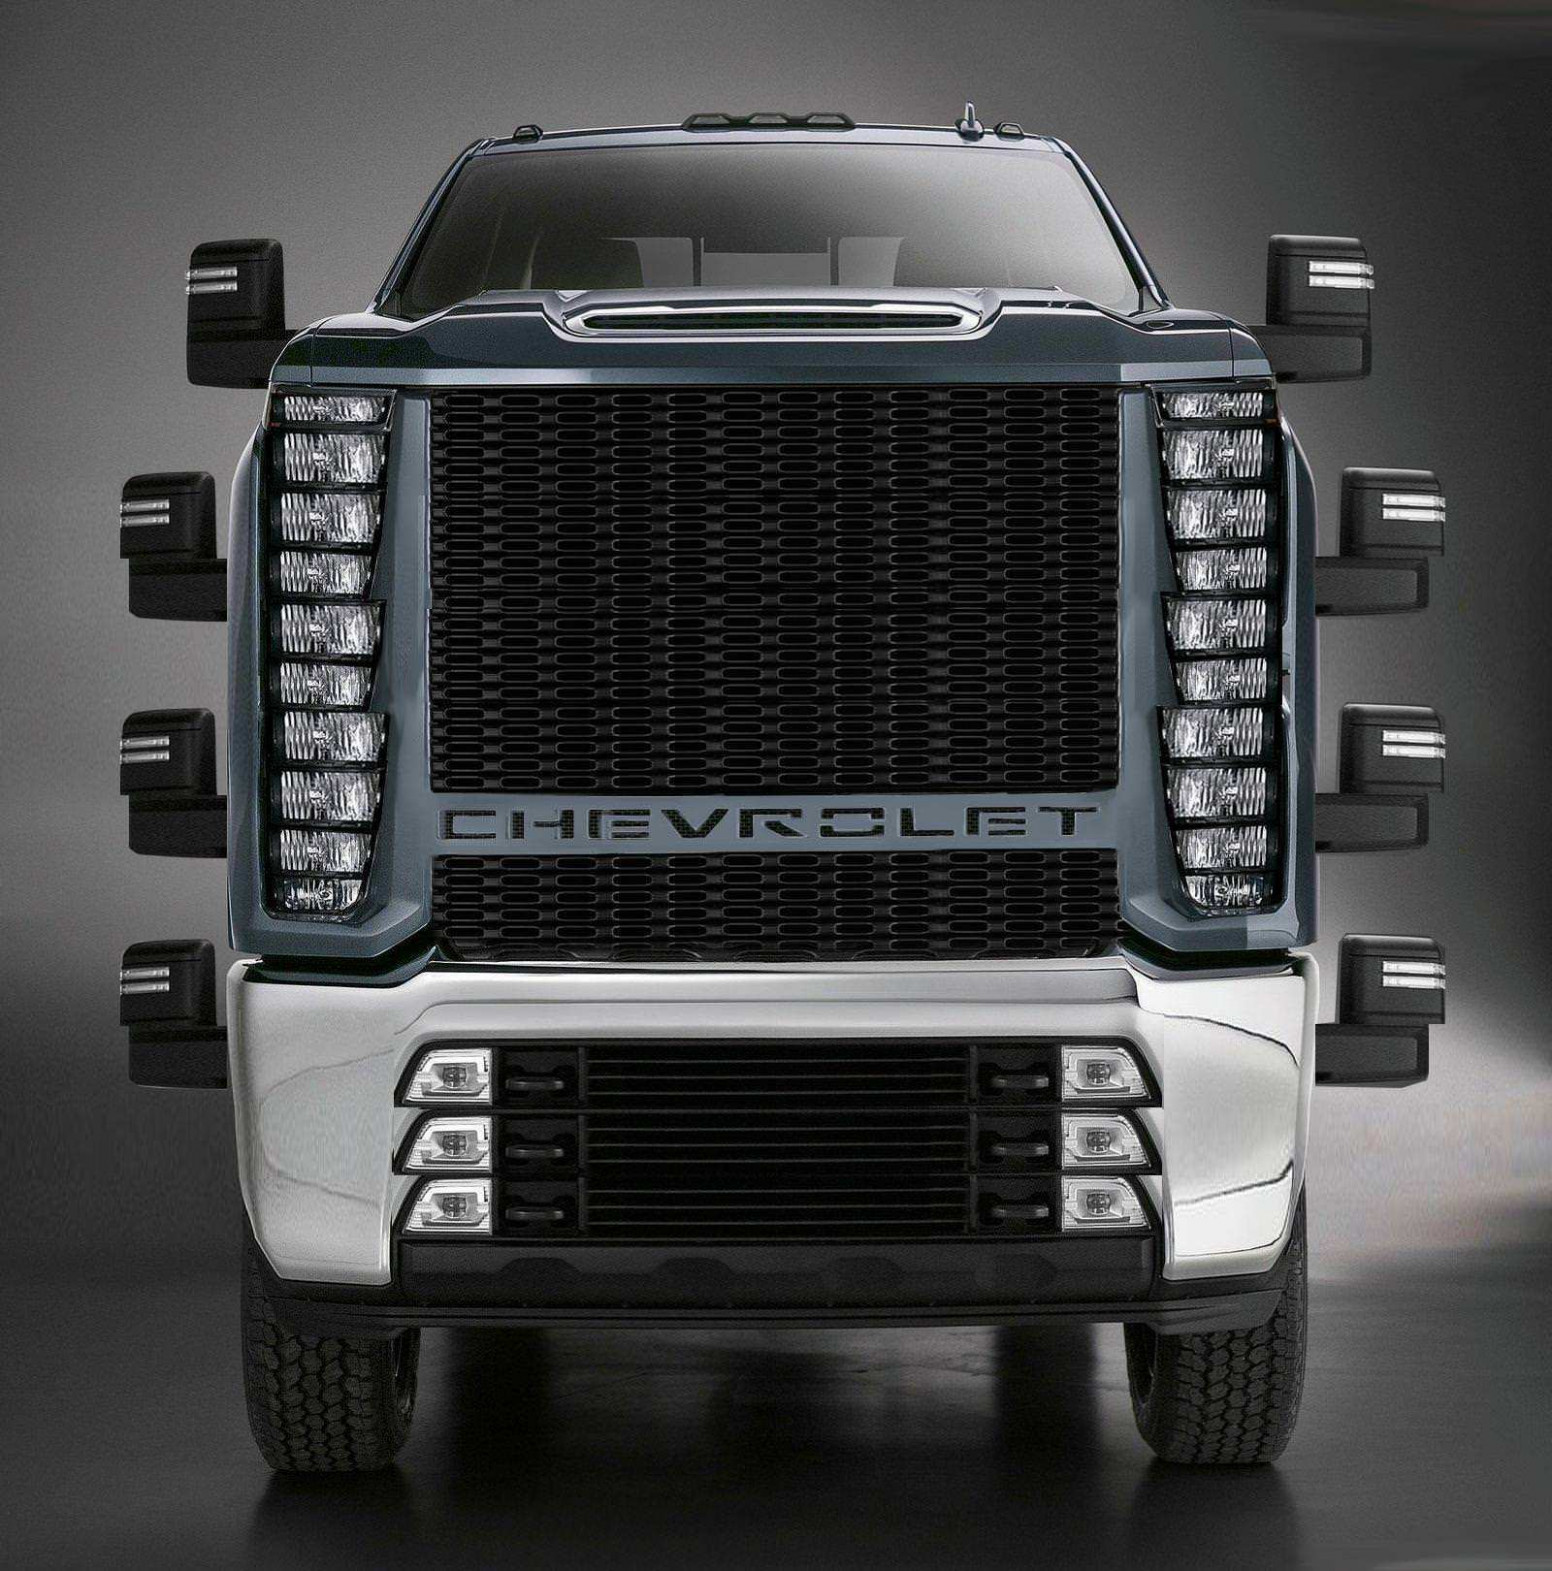 6 All New 6 Chevrolet Grill Performance and New Engine - Car ...